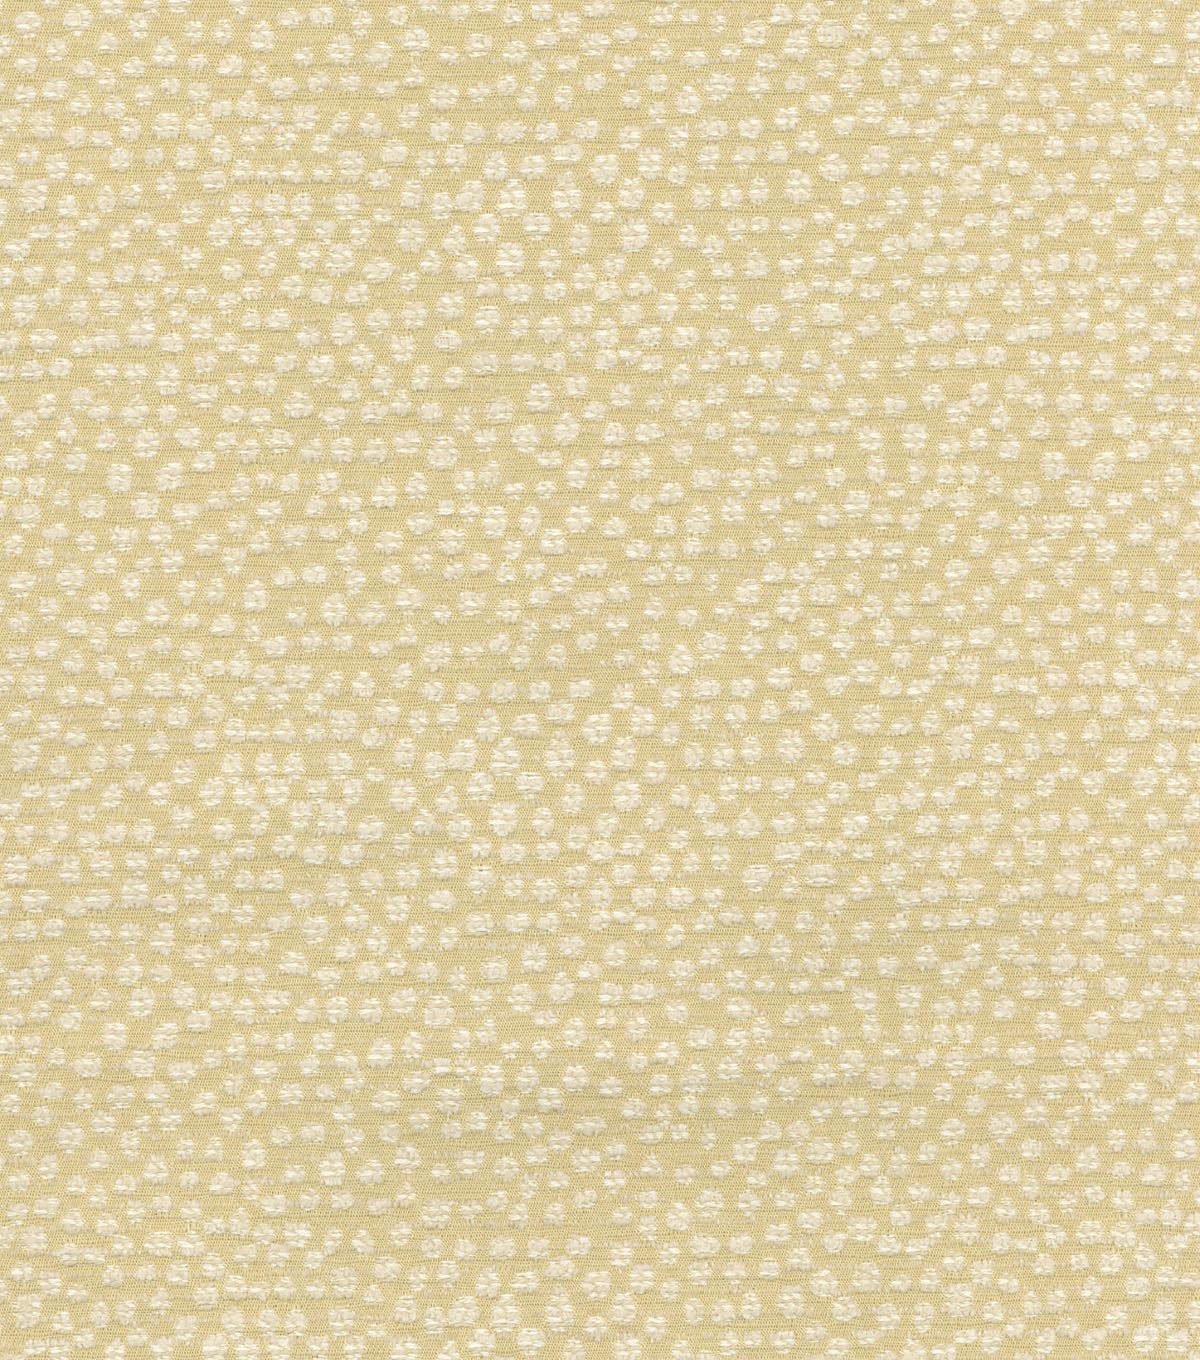 "Home Decor 8""x8"" Swatch Fabric-Waverly Pebble Sandstone"